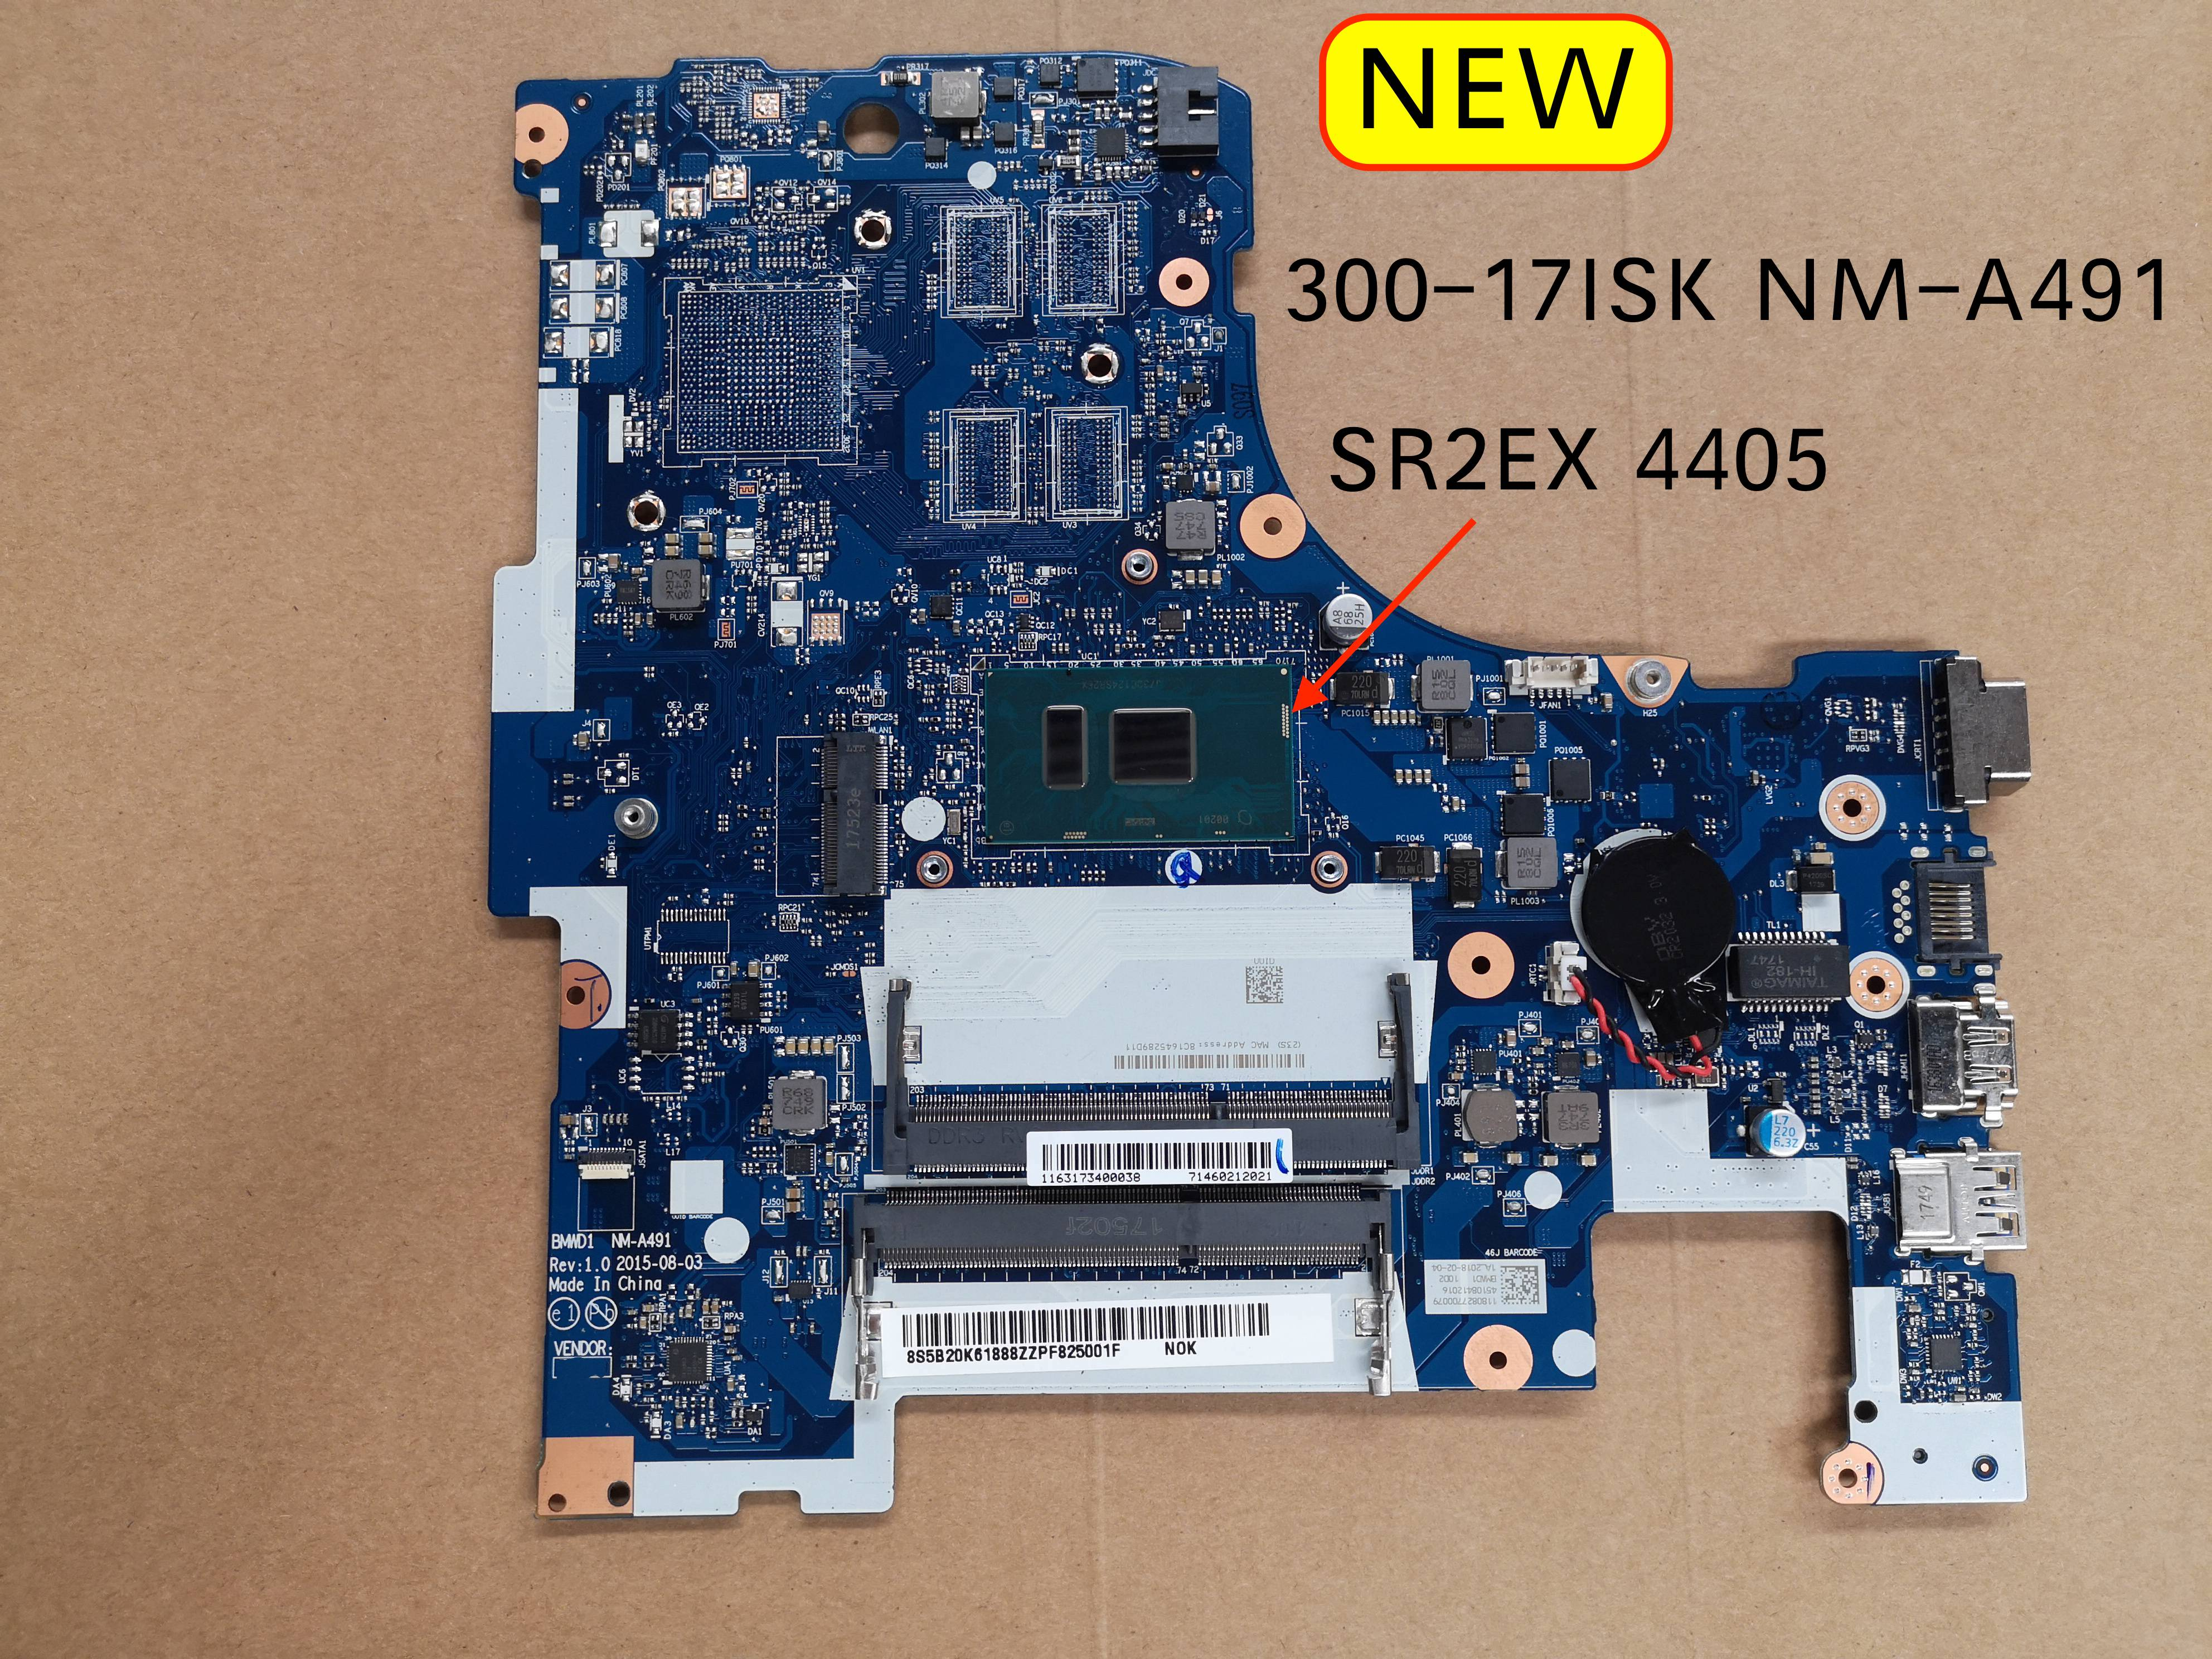 Free Shipping For Lenovo Ideapad 300-17ISK BMWD1 NM-A491 Laptop Motherboard SR2EX 4405U CPU